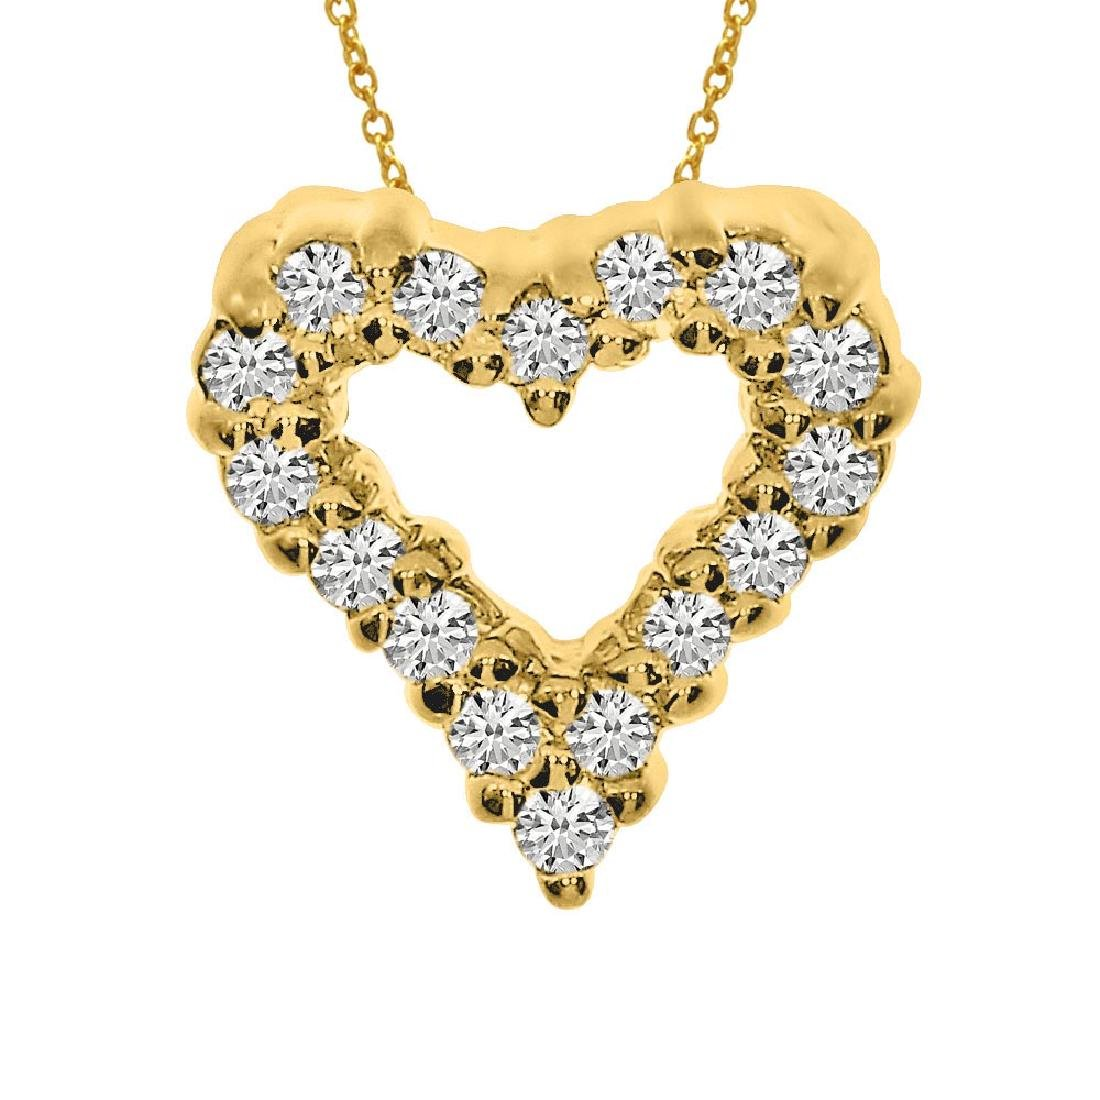 Certified 14K Yellow Gold Diamond Heart Pendant 0.25 CT